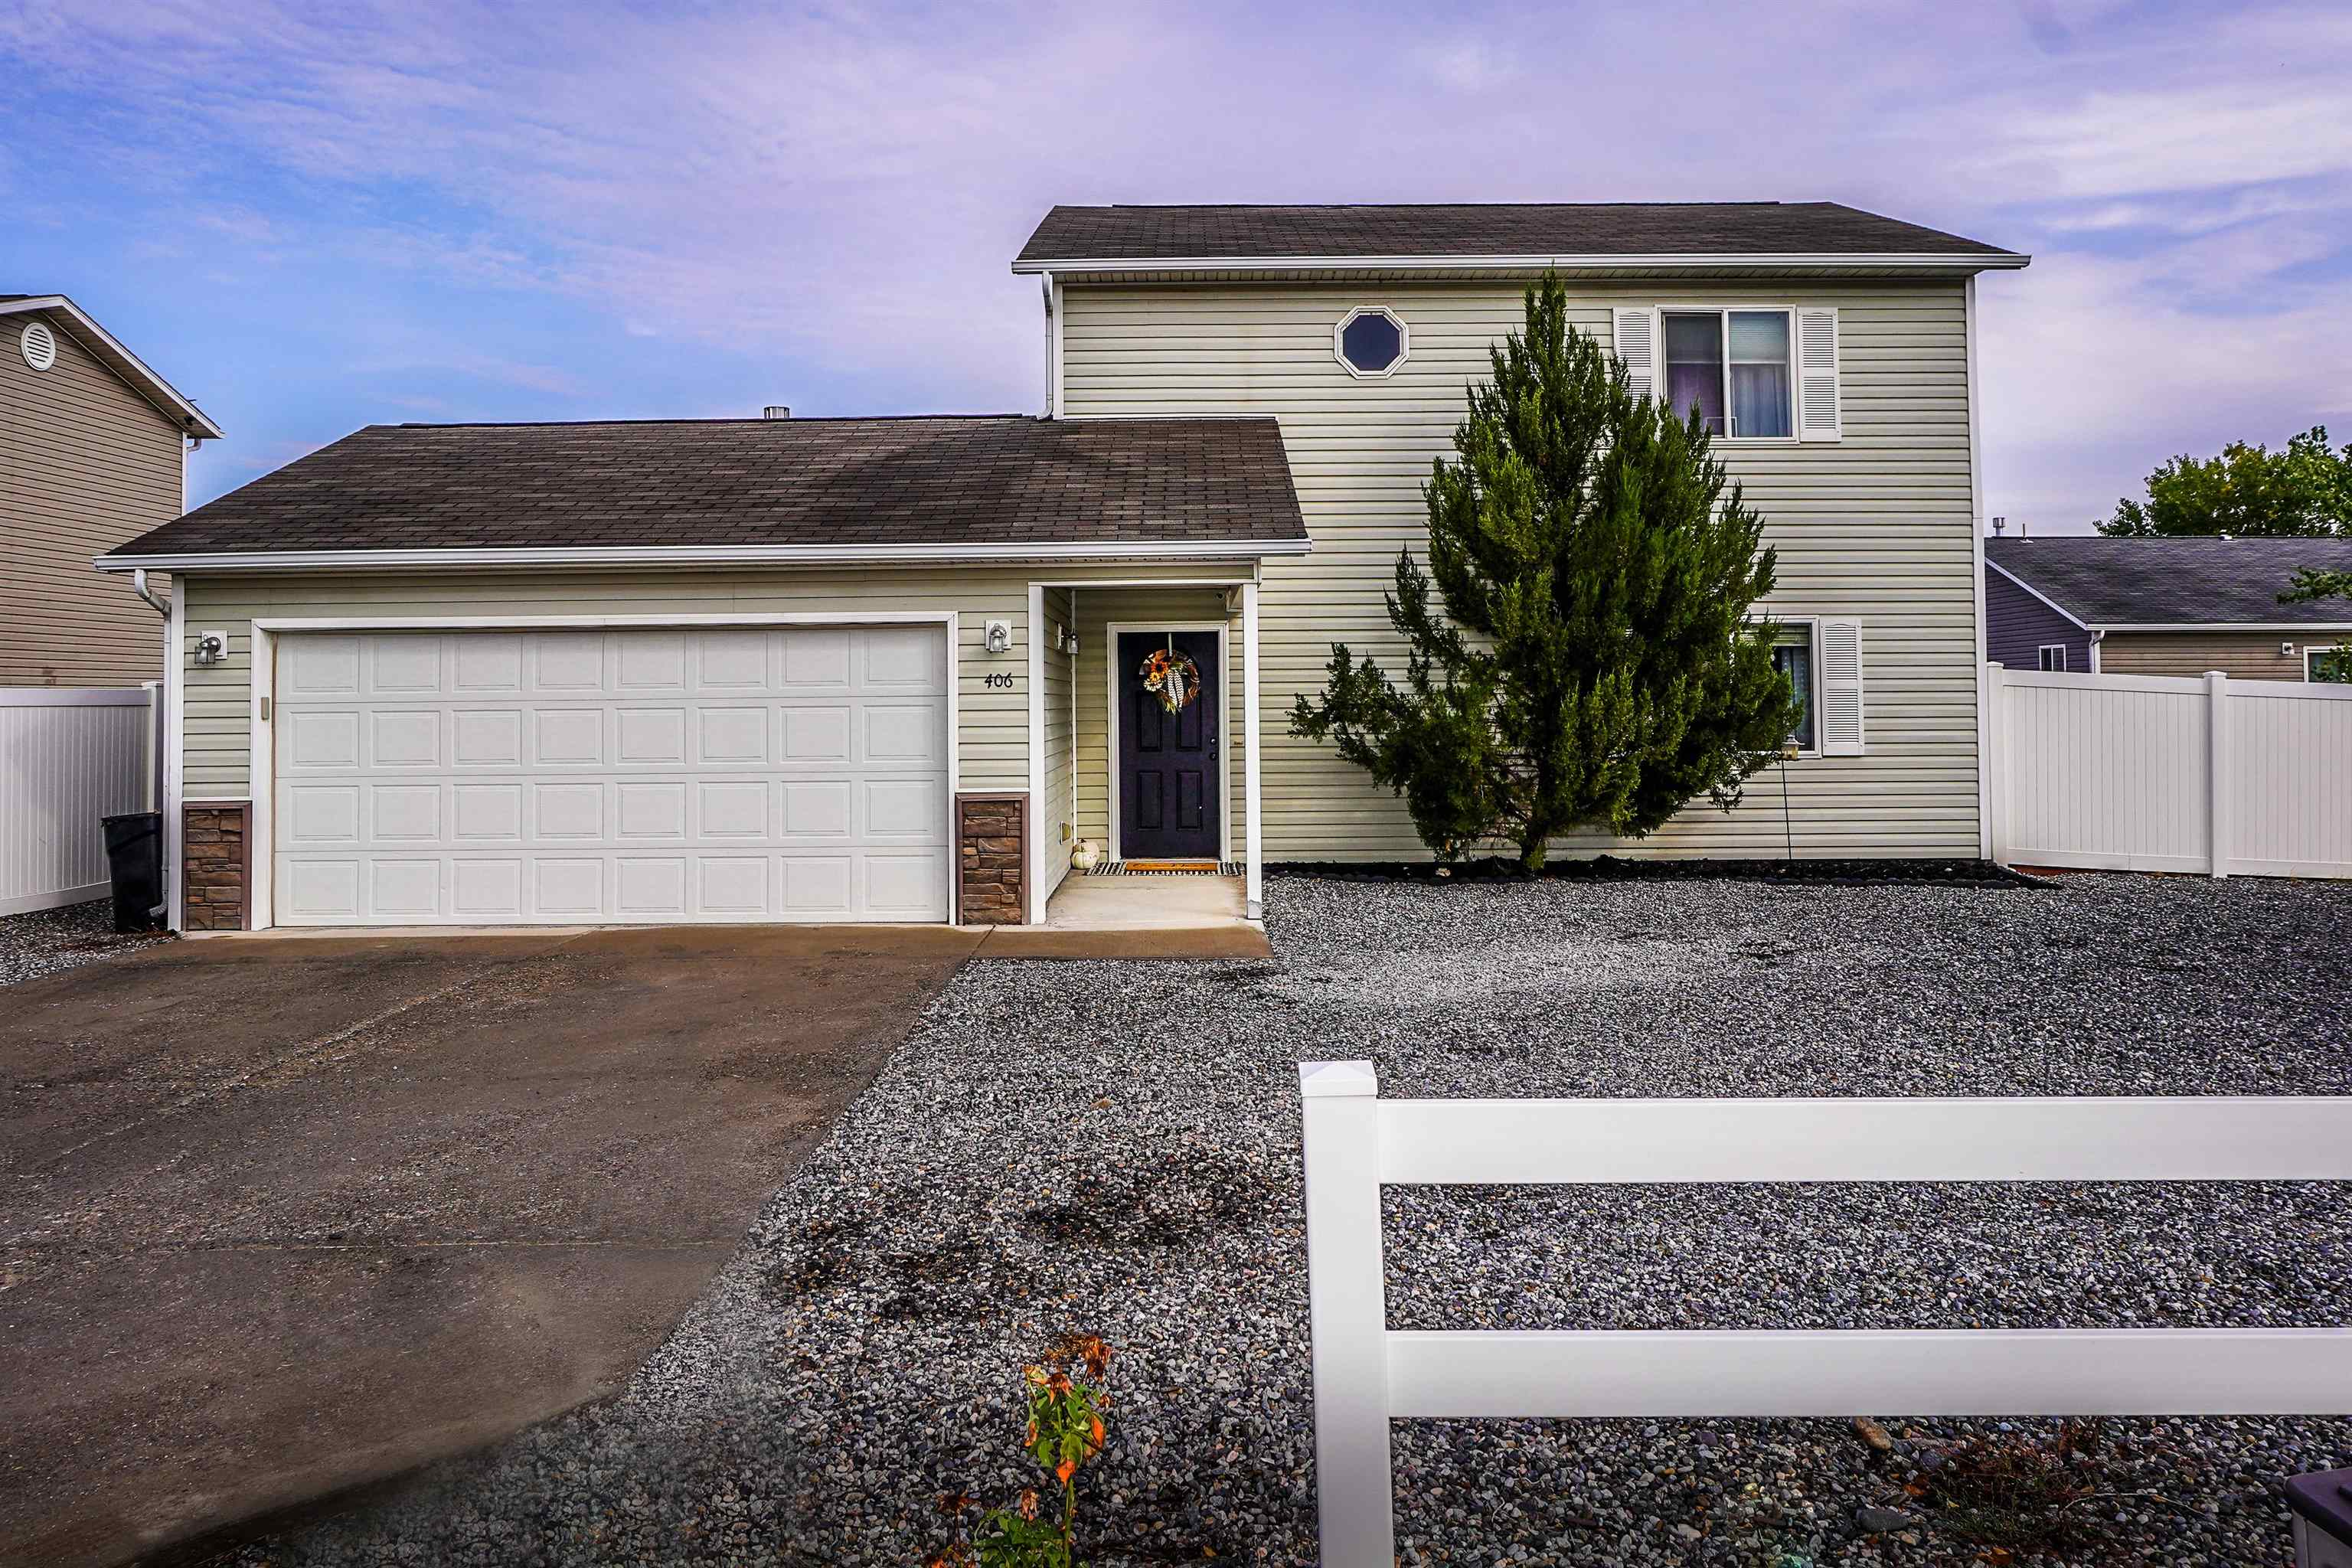 Cute move in ready home built in 2008, features open concept that is great for entertaining. Fantastic large concrete patio with a privacy fence perfect for BBQs. All appliances will stay including washer & dryer. New water heater installed last year. If you love the outdoors, this home is walking distance to James M. Robb Colorado State Park with amenities including, fishing, and access to Colorado river front trail. Home warranty will be included.